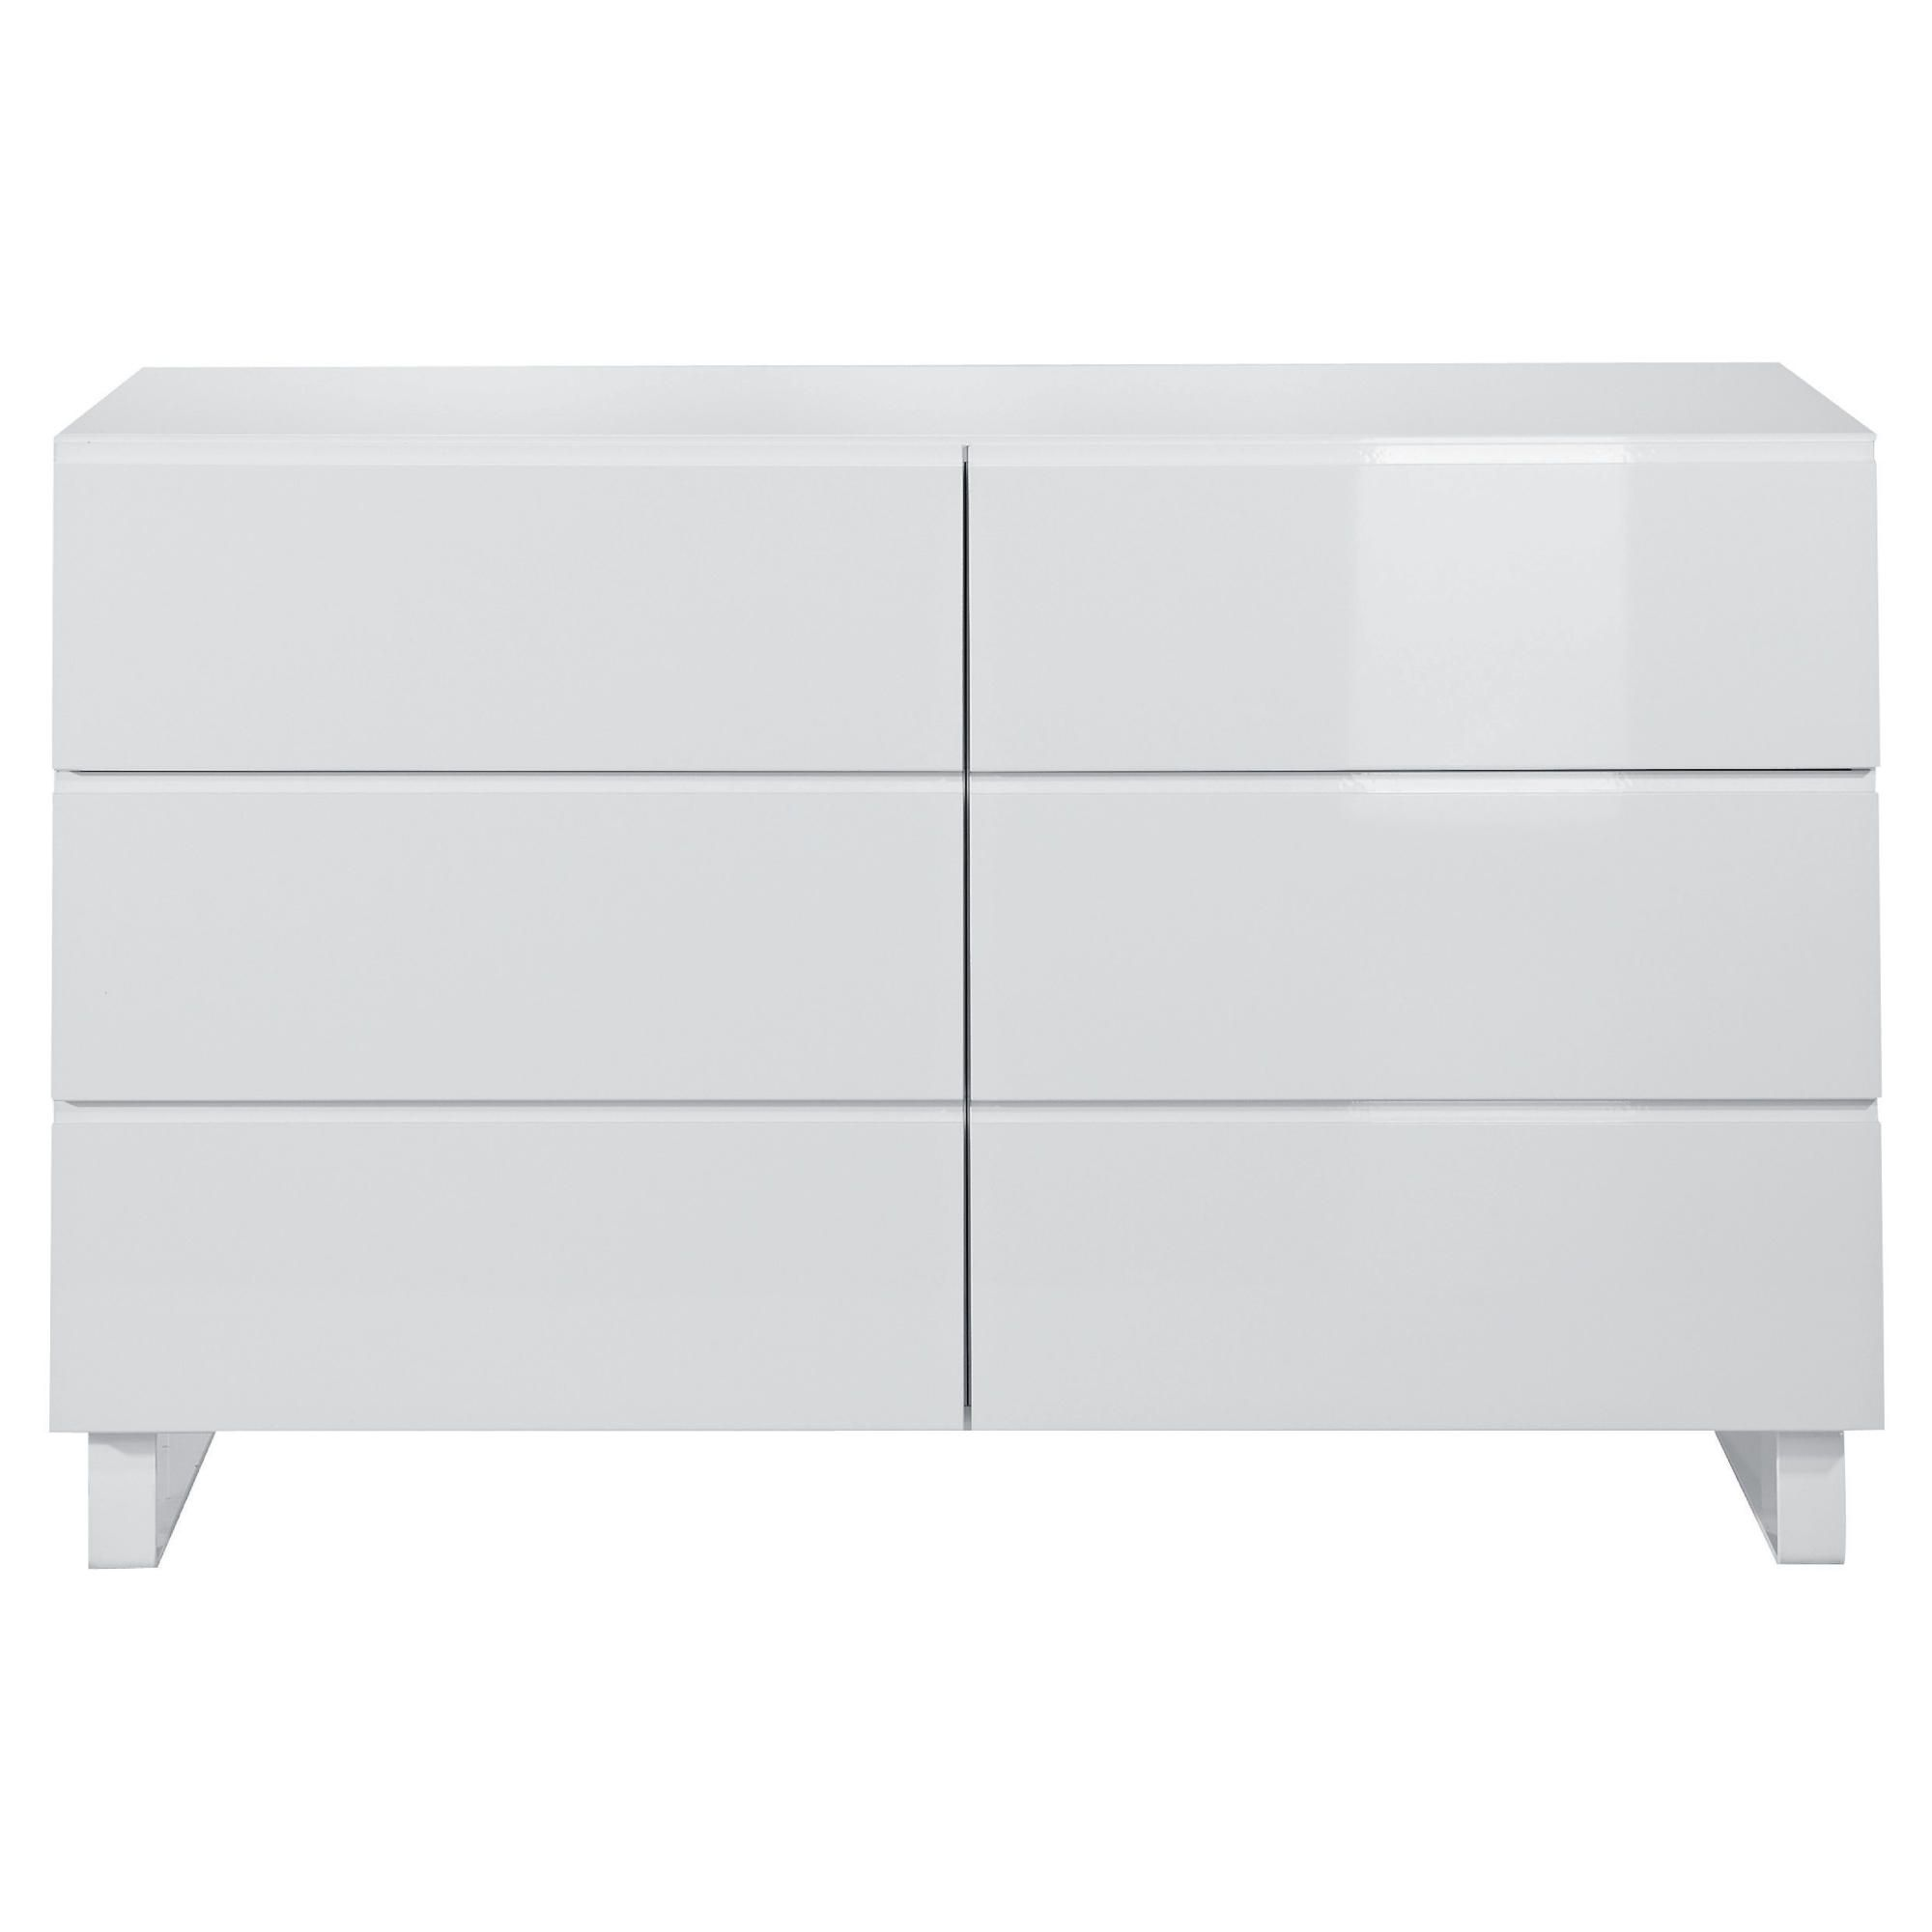 Urban 6 Drawer Chest, White at Tesco Direct